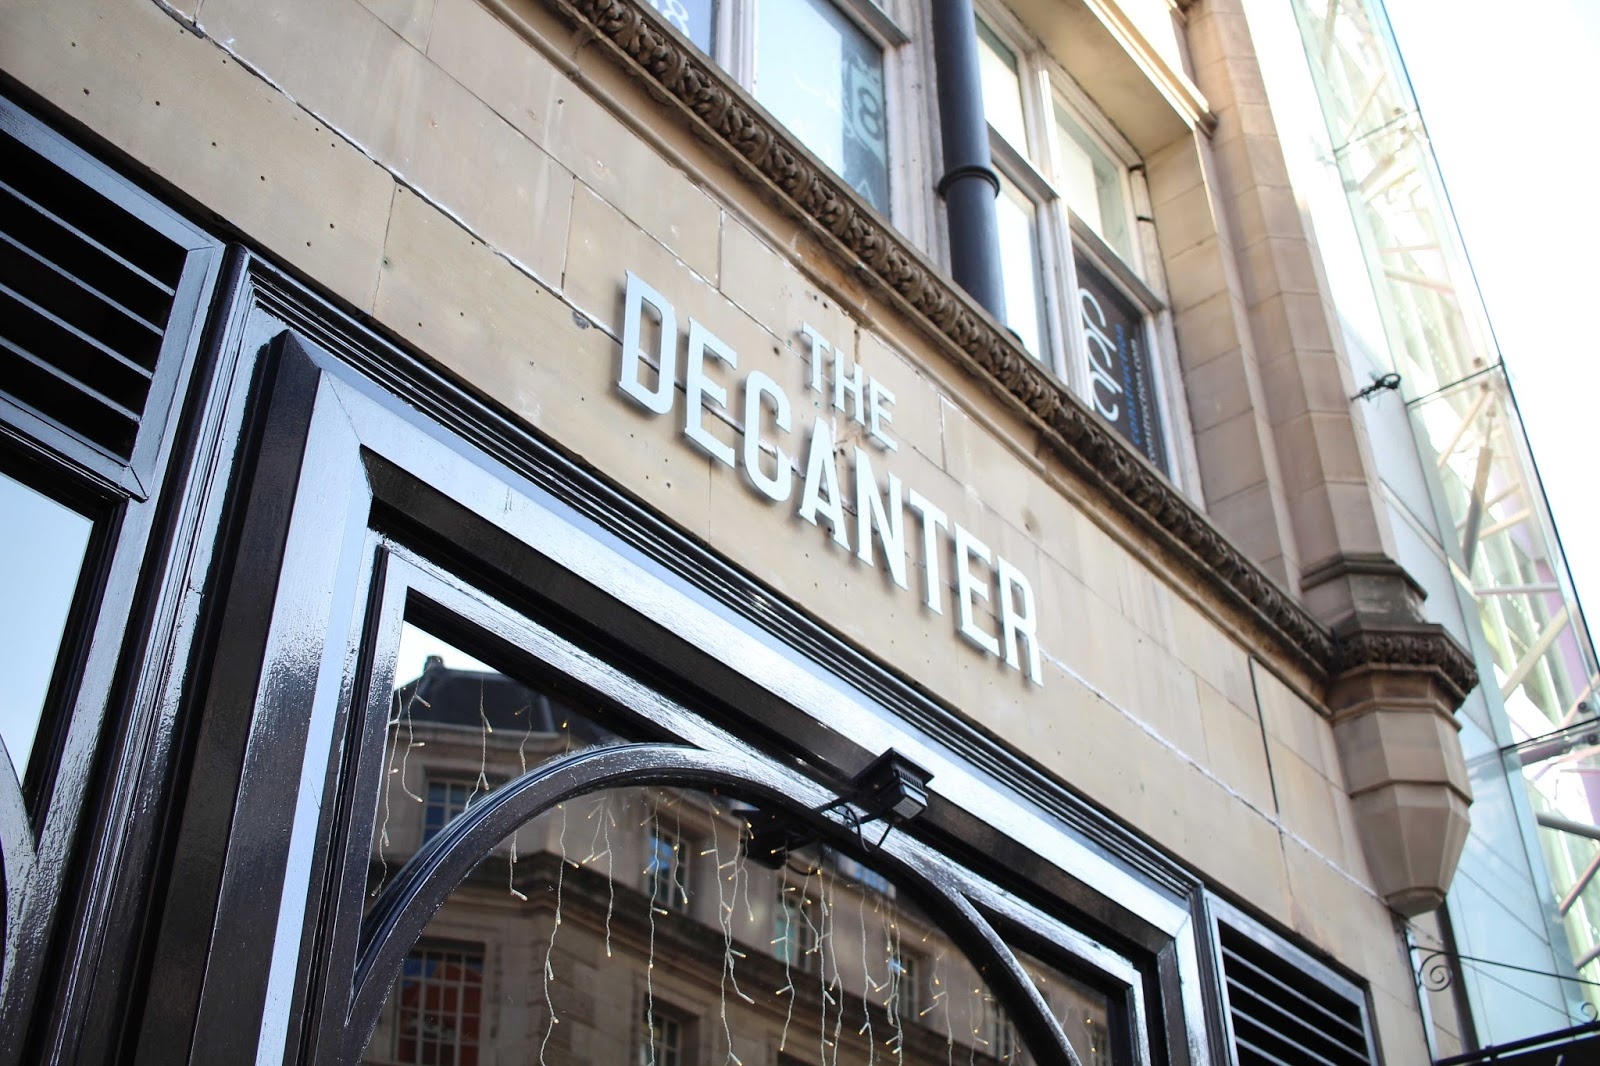 The Decanter Leeds Wine Bar